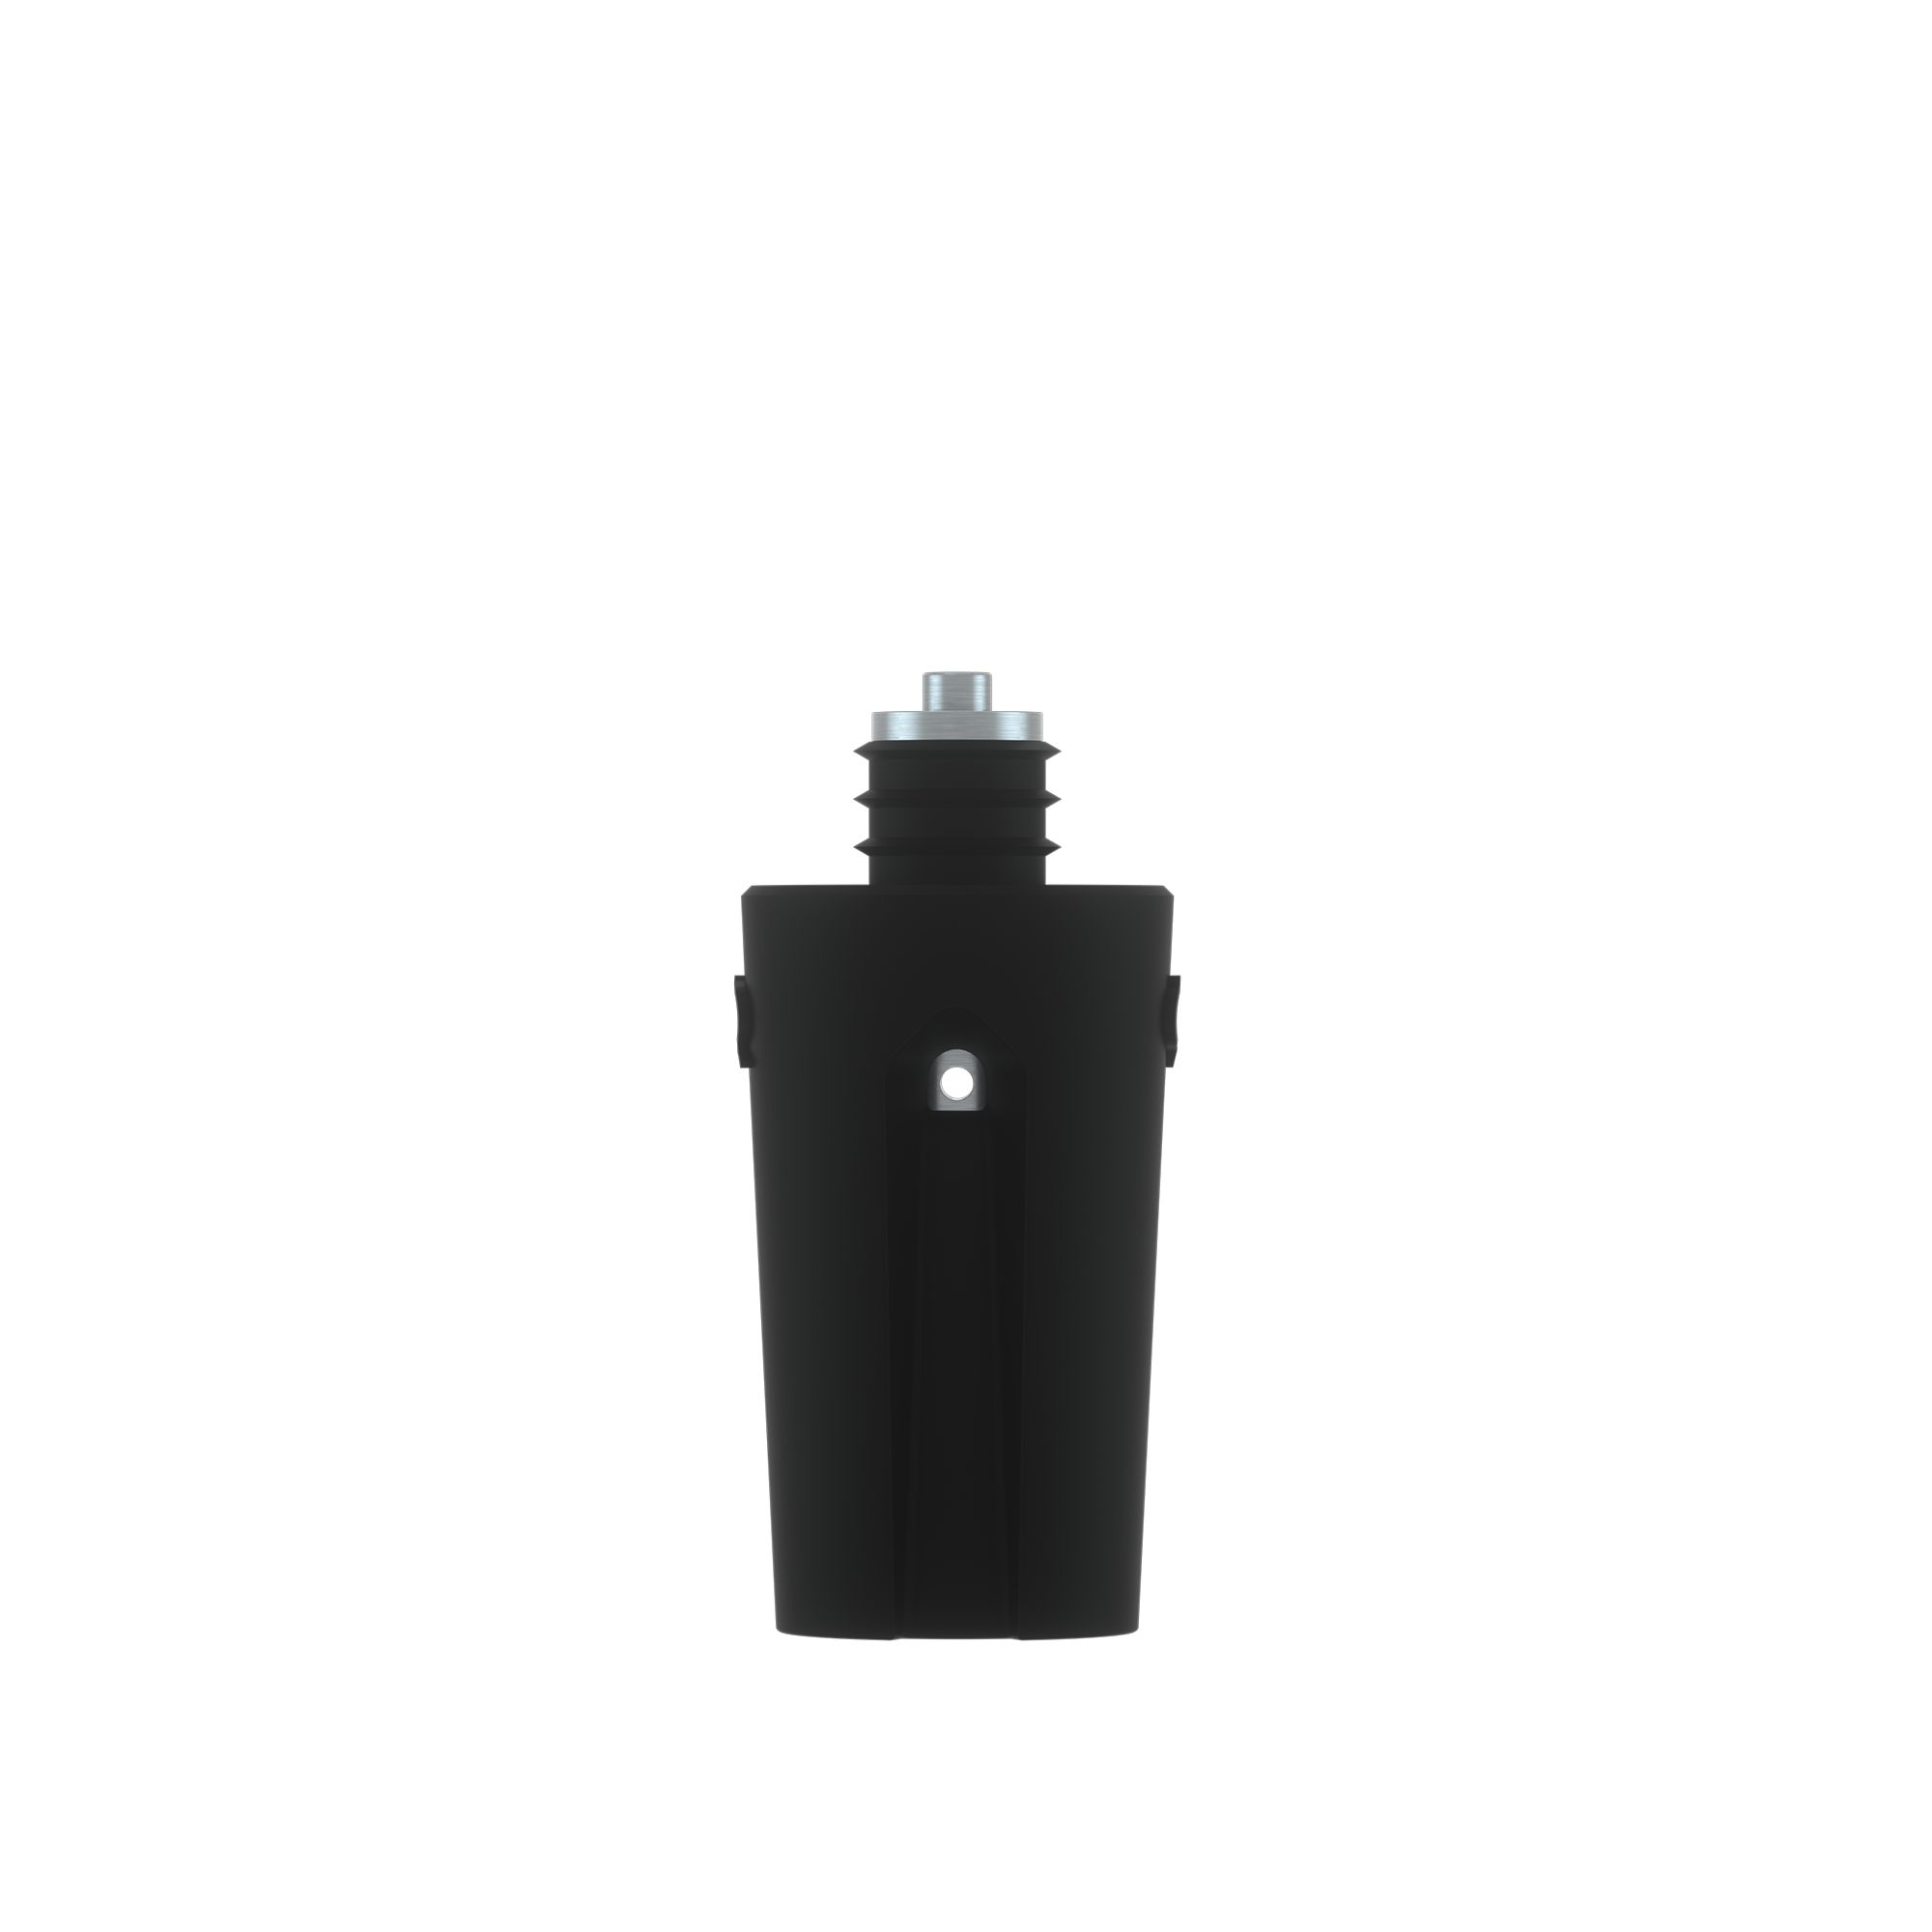 Silicone connector + exchanger